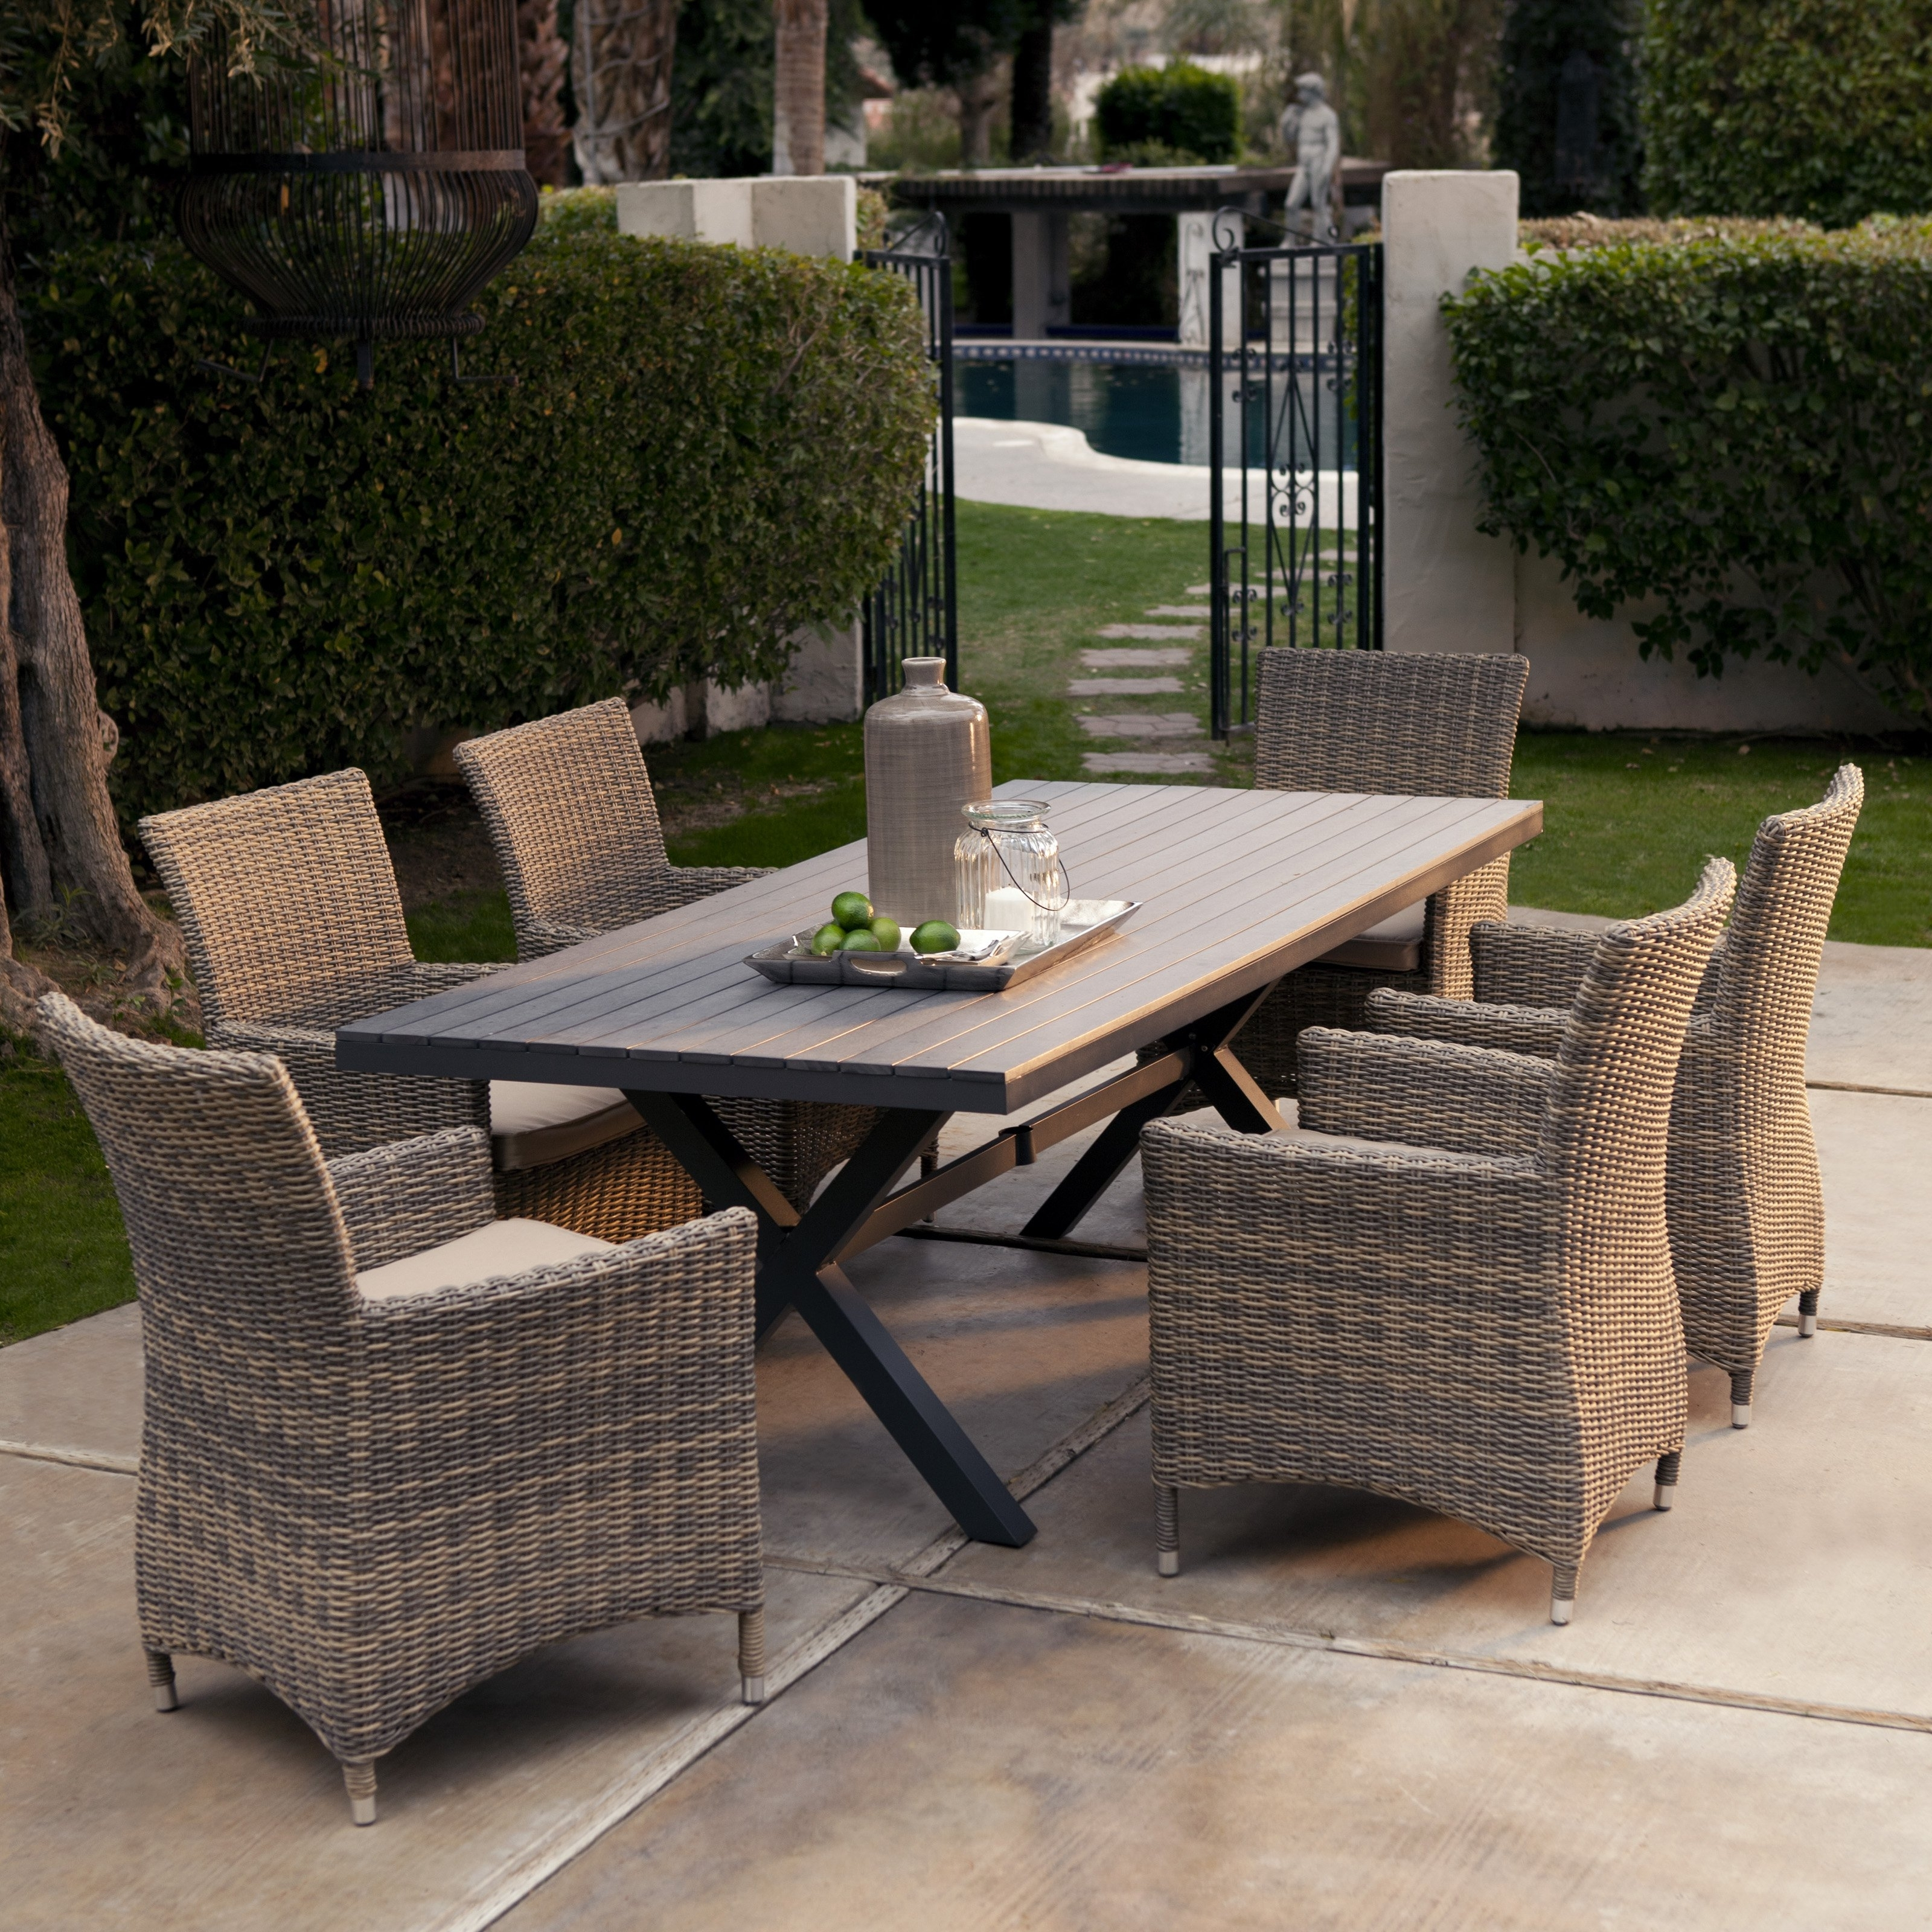 Furniture : Furniture Outdoor Patio Cushions Sunbrella Fabric In With Regard To Famous Outdoor Sofas And Chairs (View 18 of 20)